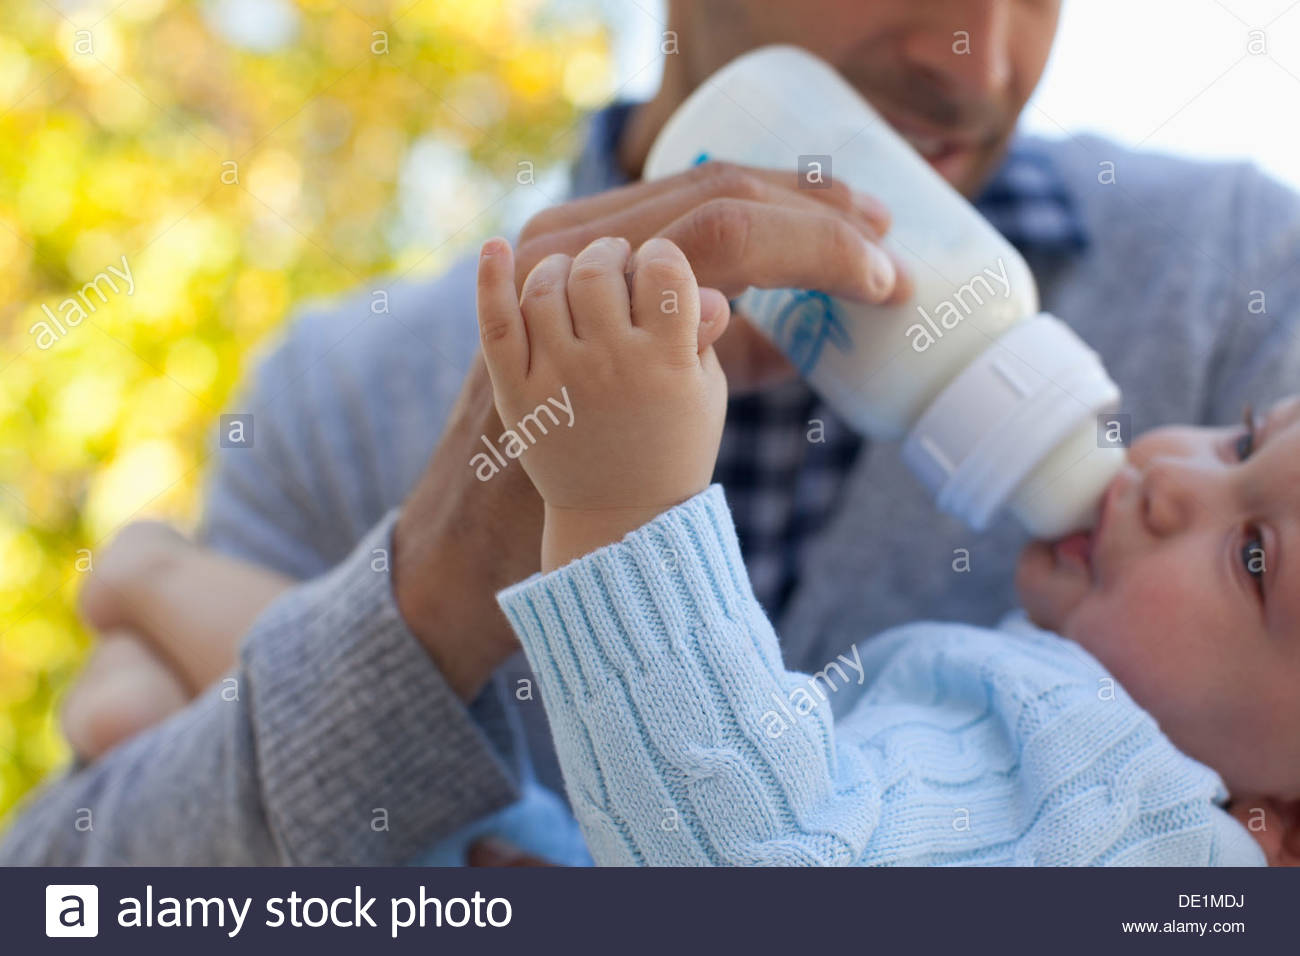 Father feeding baby from bottle - Stock Image